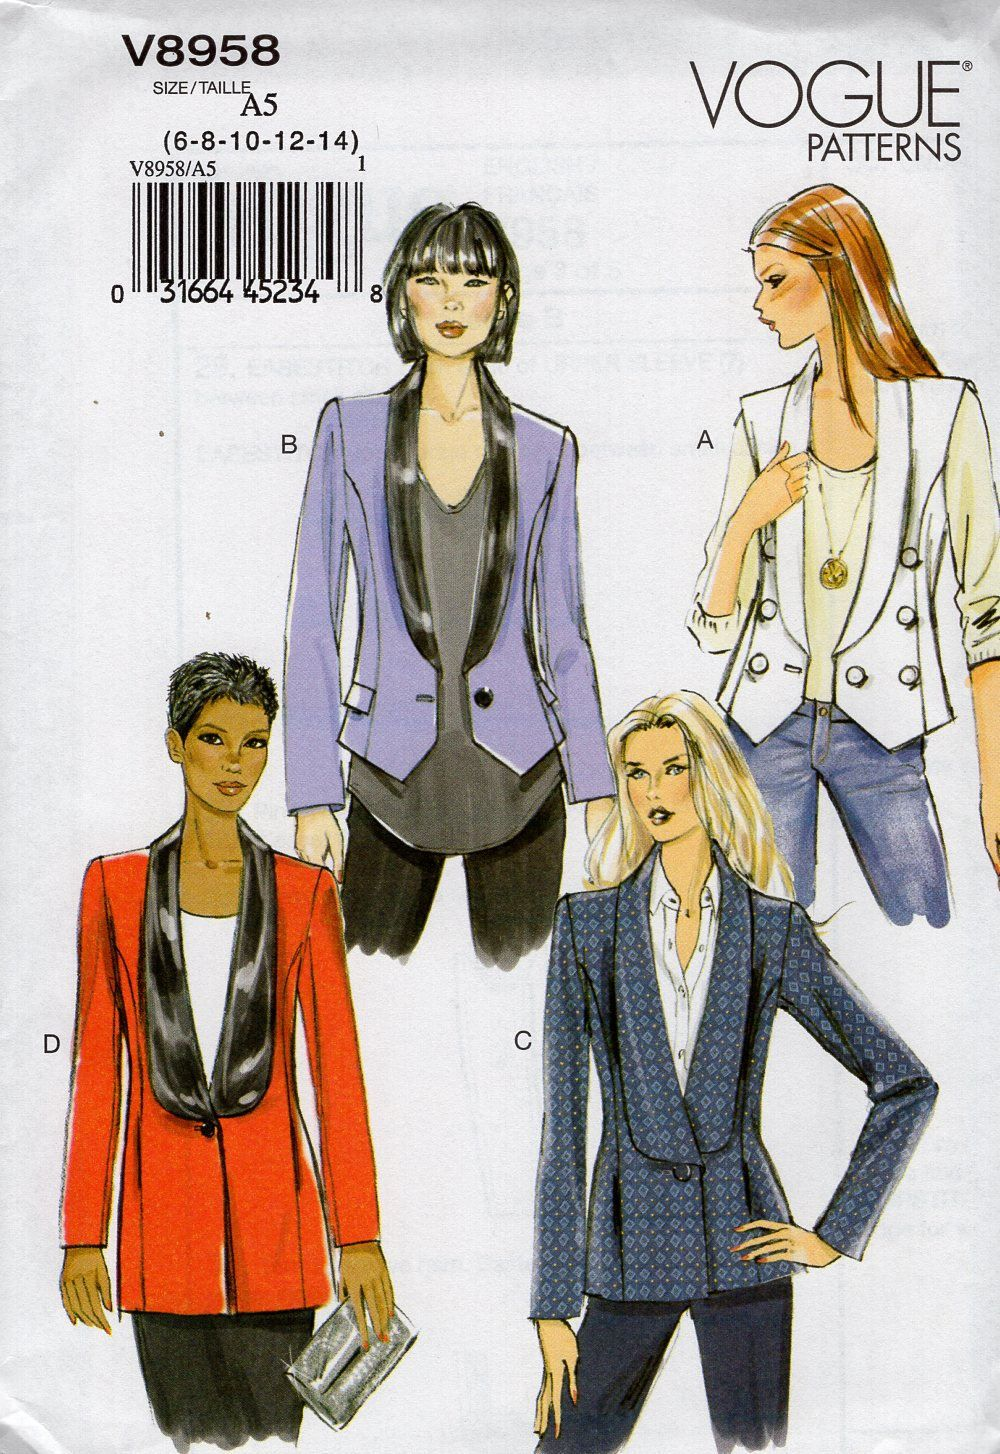 06d2050aabc Vogue 8958 Free Us Ship Sewing Pattern Tuxedo Jacket waistcoat Size 6 8 10  12 14 Bust 30.5 31.5 32.5 34 36 Sewing Pattern New Uncut by LanetzLiving on  Etsy